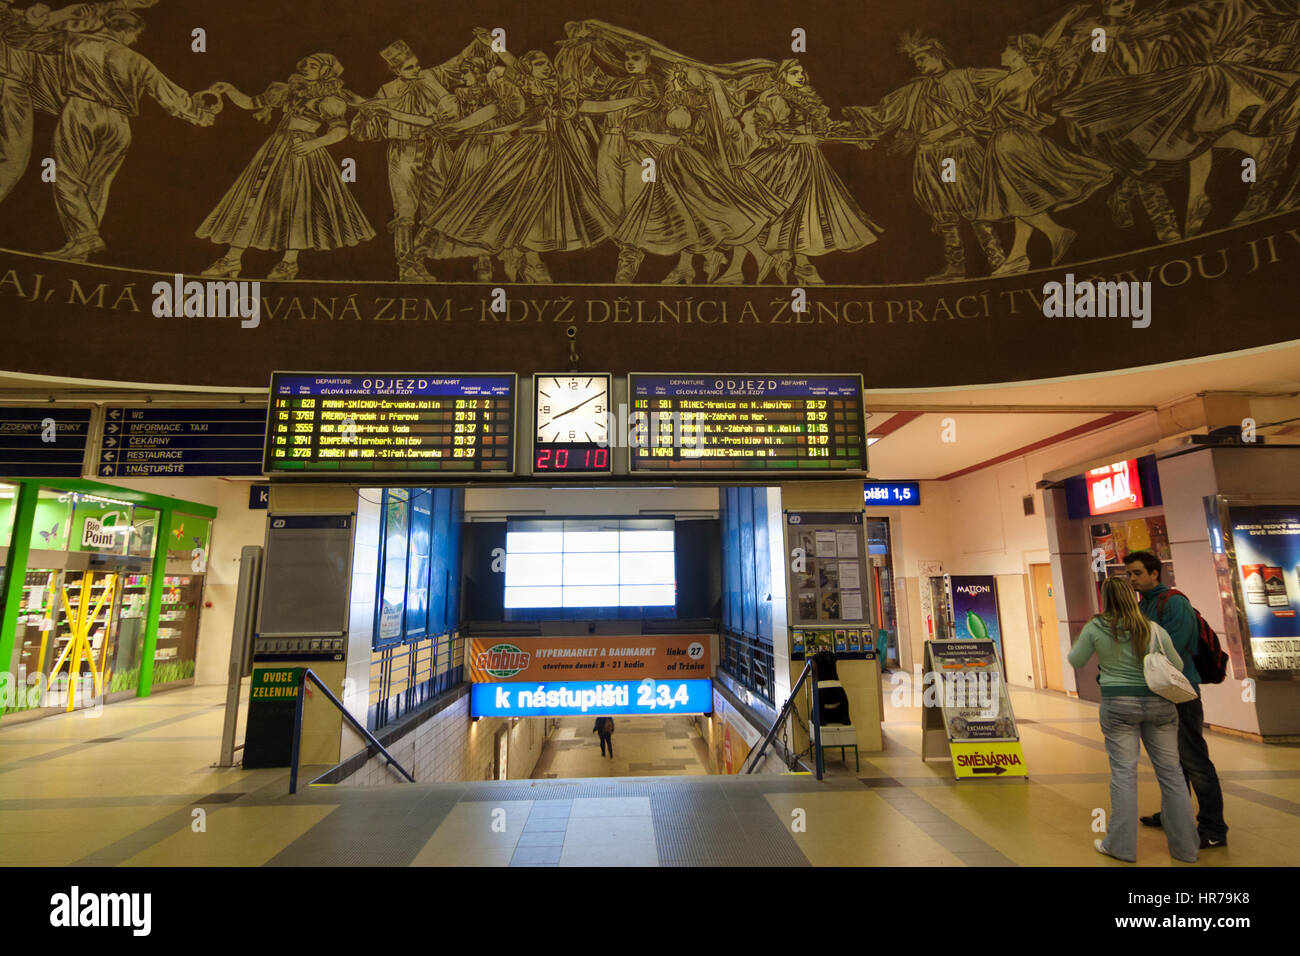 Old socialist mural at the train station of Olomouc, Moravia, Czech Republic - Stock Image